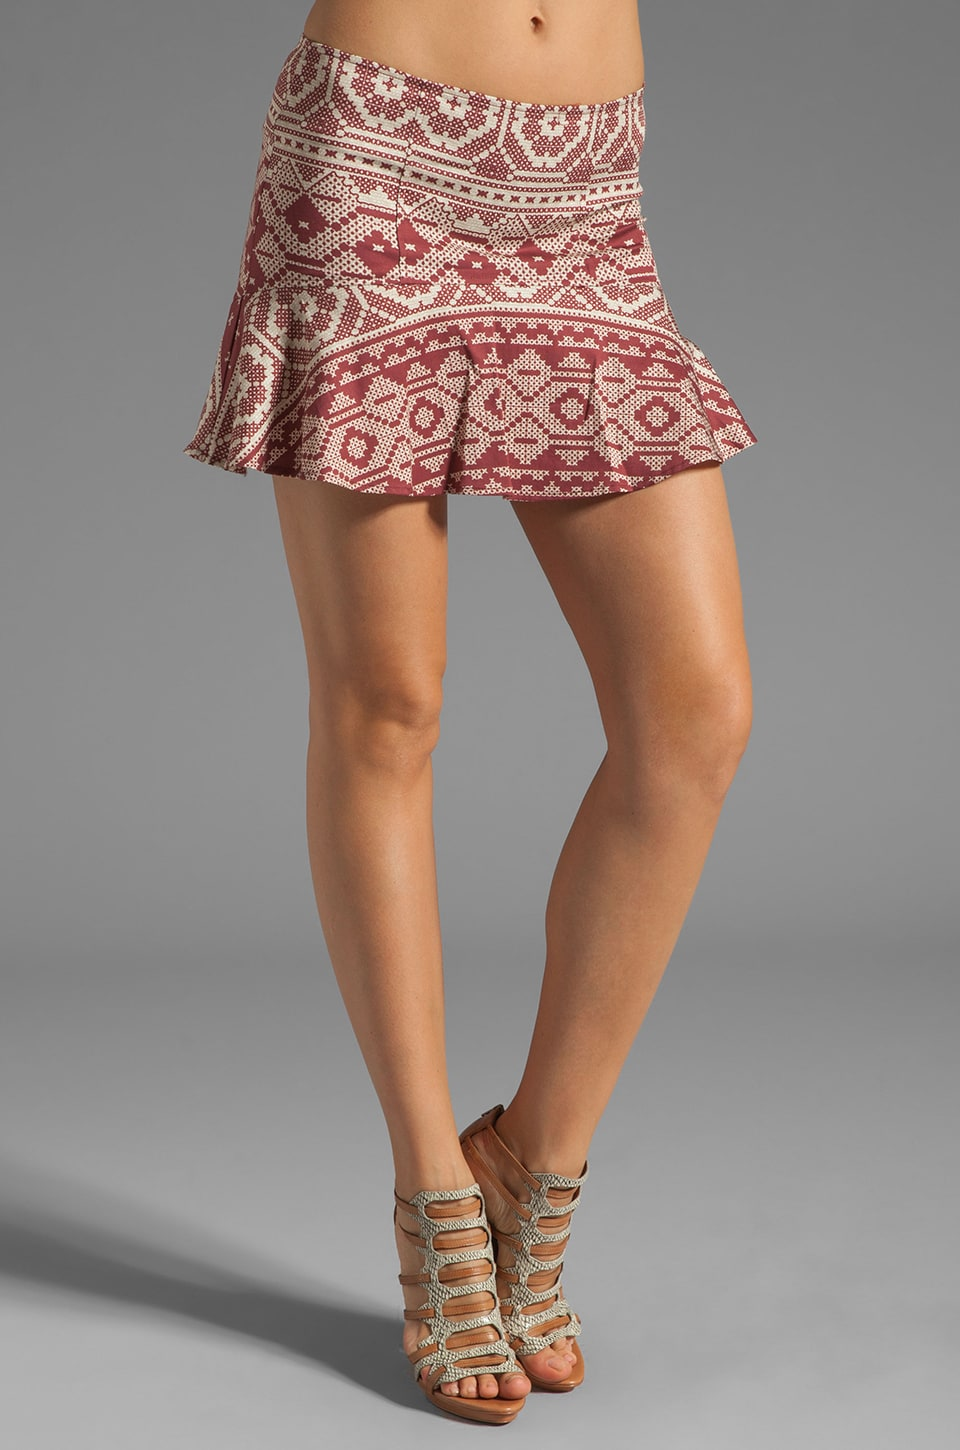 Charles Henry Top Stitch Mini Skirt in Red Patchwork